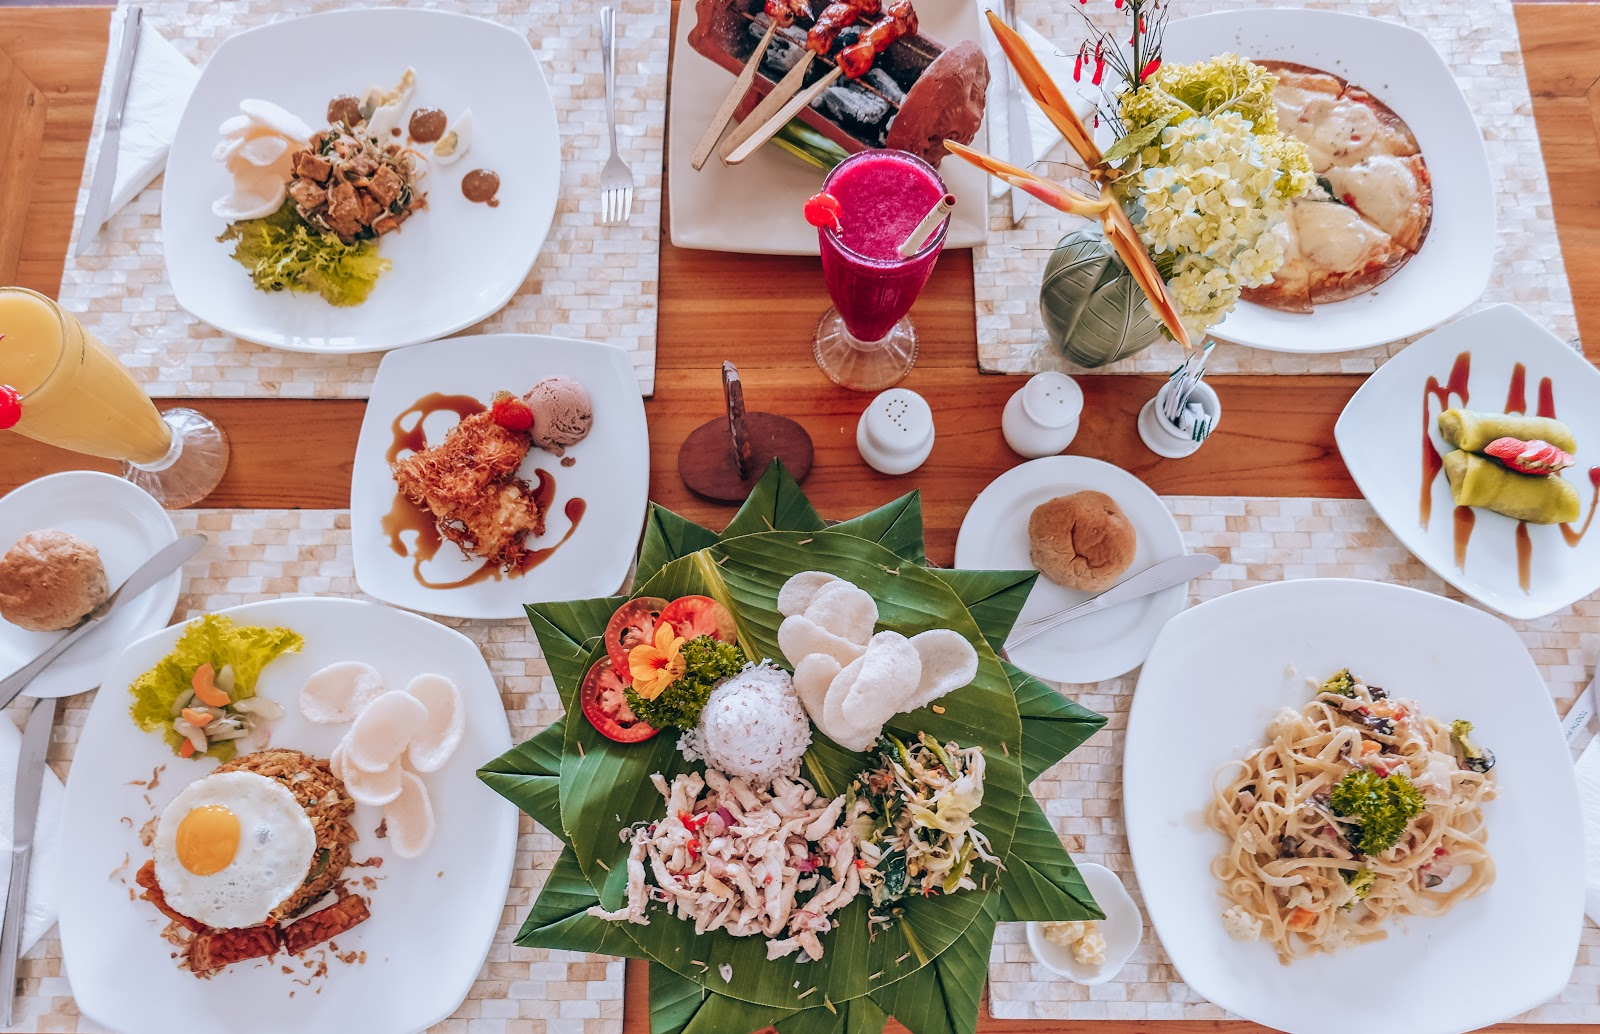 a table filled with Indonesian cuisine dishes